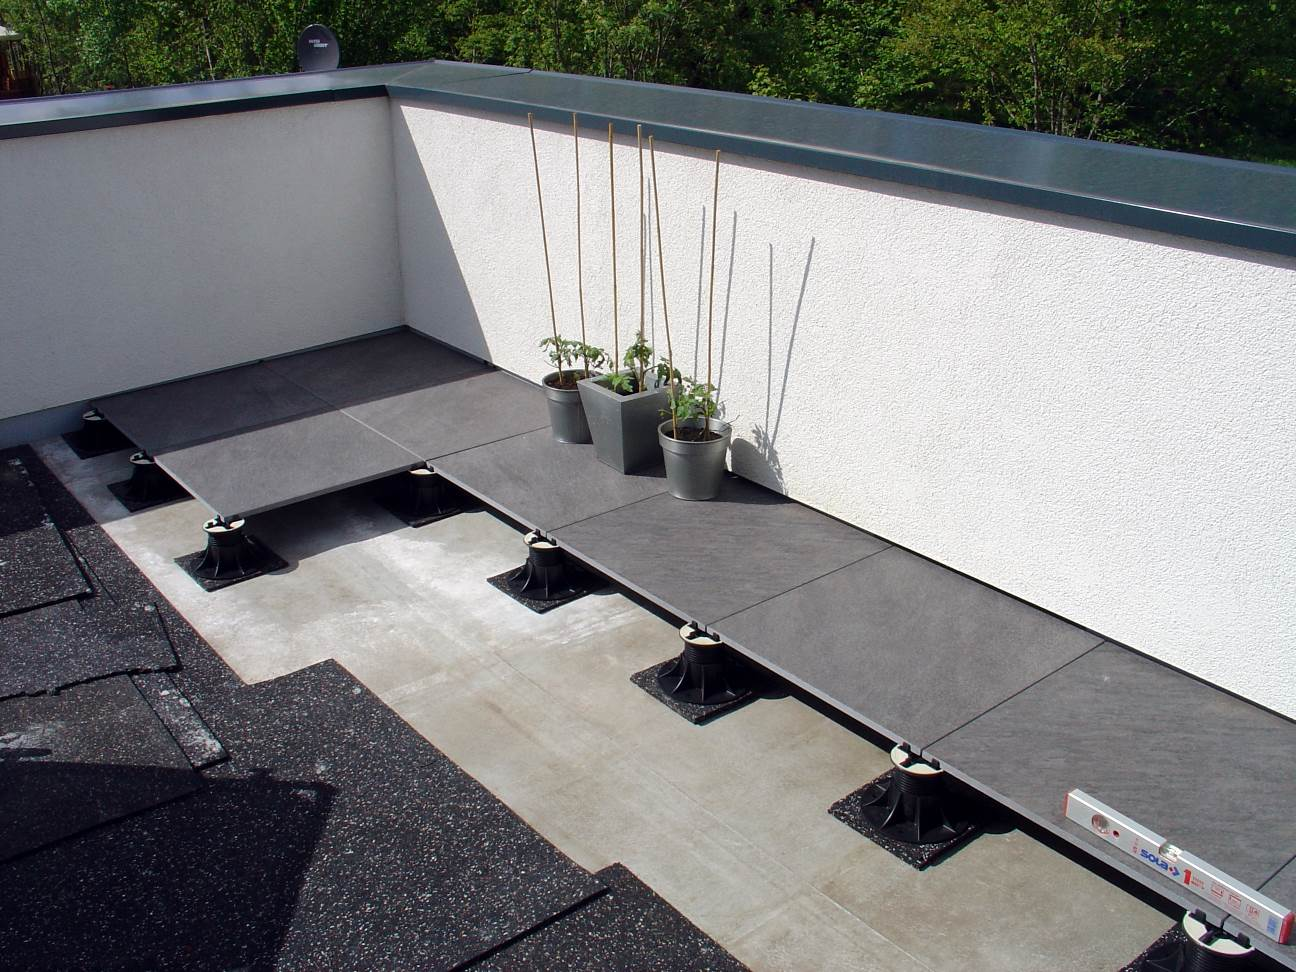 dachterrasse bodenbelag dachterrasse bodenbelag die besten 25 dachterrasse ideen auf pinterest. Black Bedroom Furniture Sets. Home Design Ideas